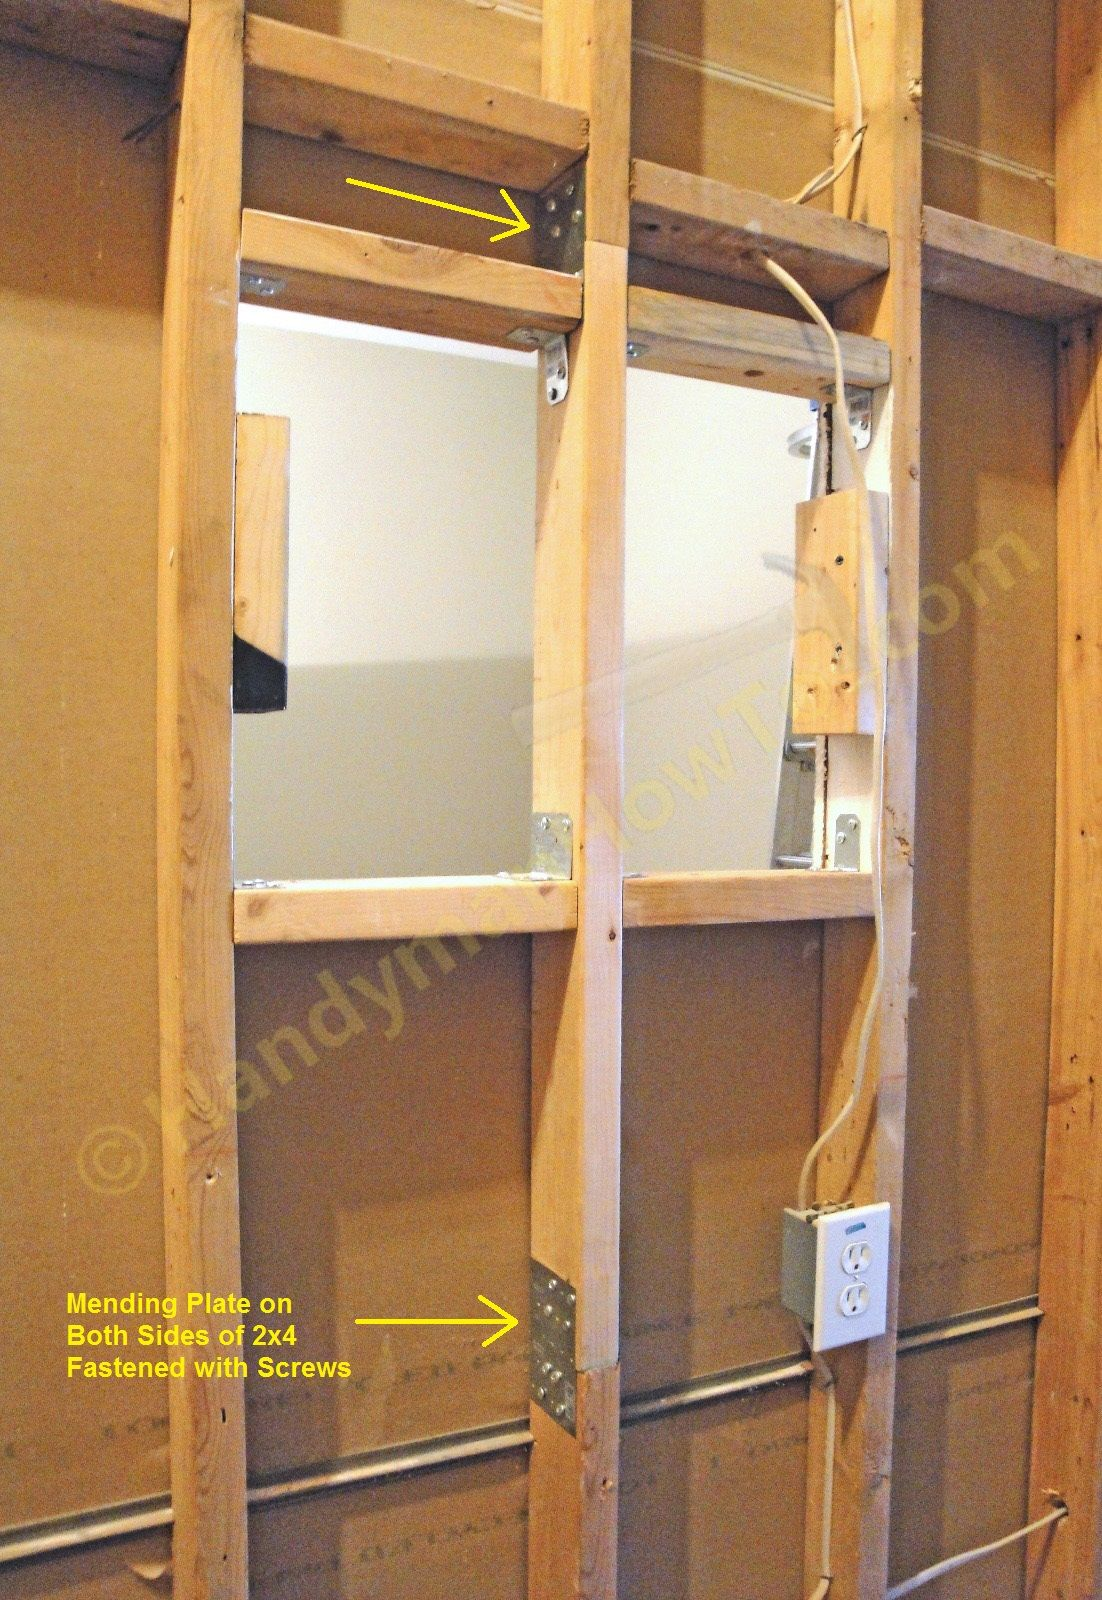 How To Repair A 2x4 Load Bearing Wall Stud Photo Tutorial Install Electrical Rough In Wiring Of Earthship Tire Walls Pictures Pin On The Splice Mending Plates And Cross Braces Then Mount Drywall Panel